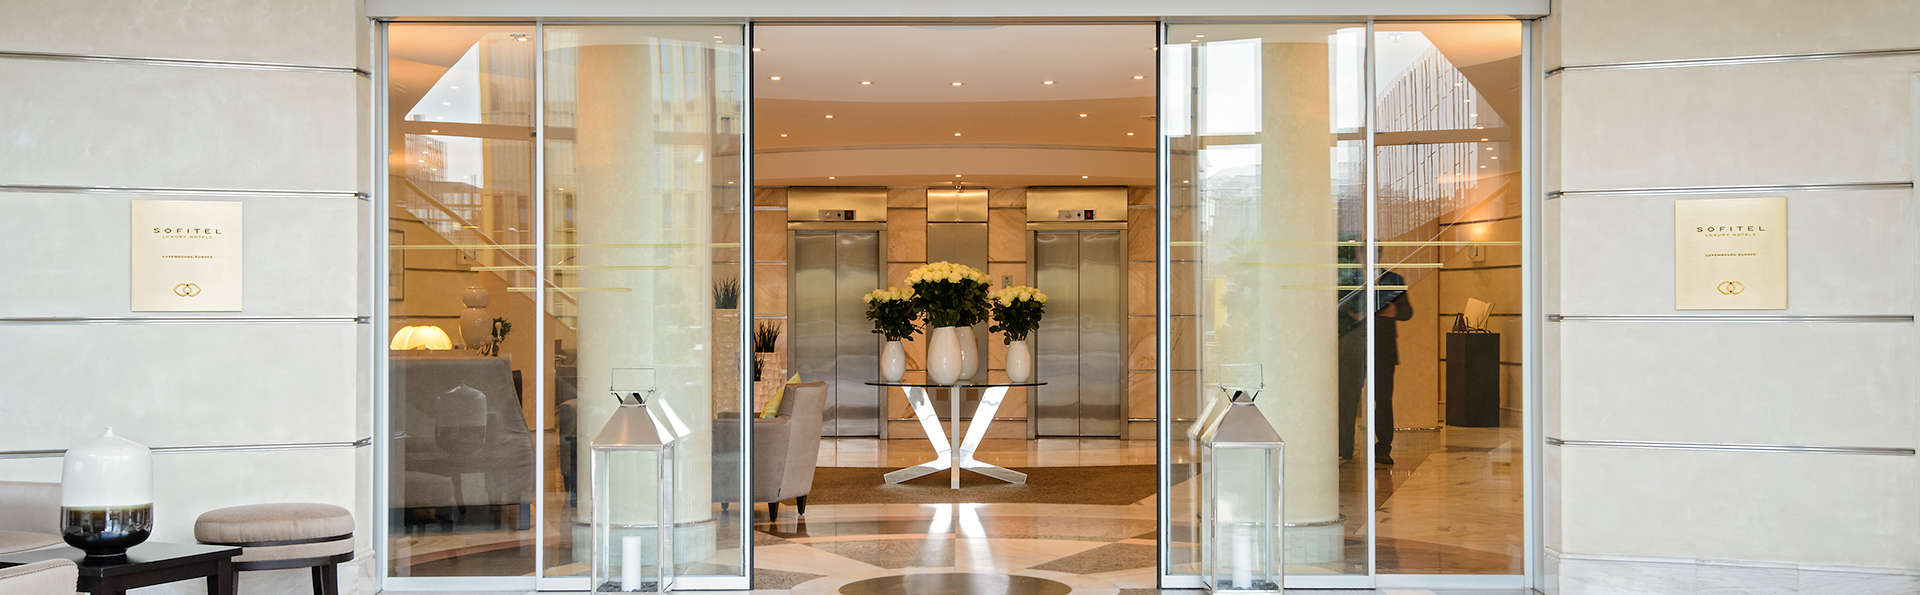 Sofitel Luxembourg Europe  - Edit_Entrance.jpg